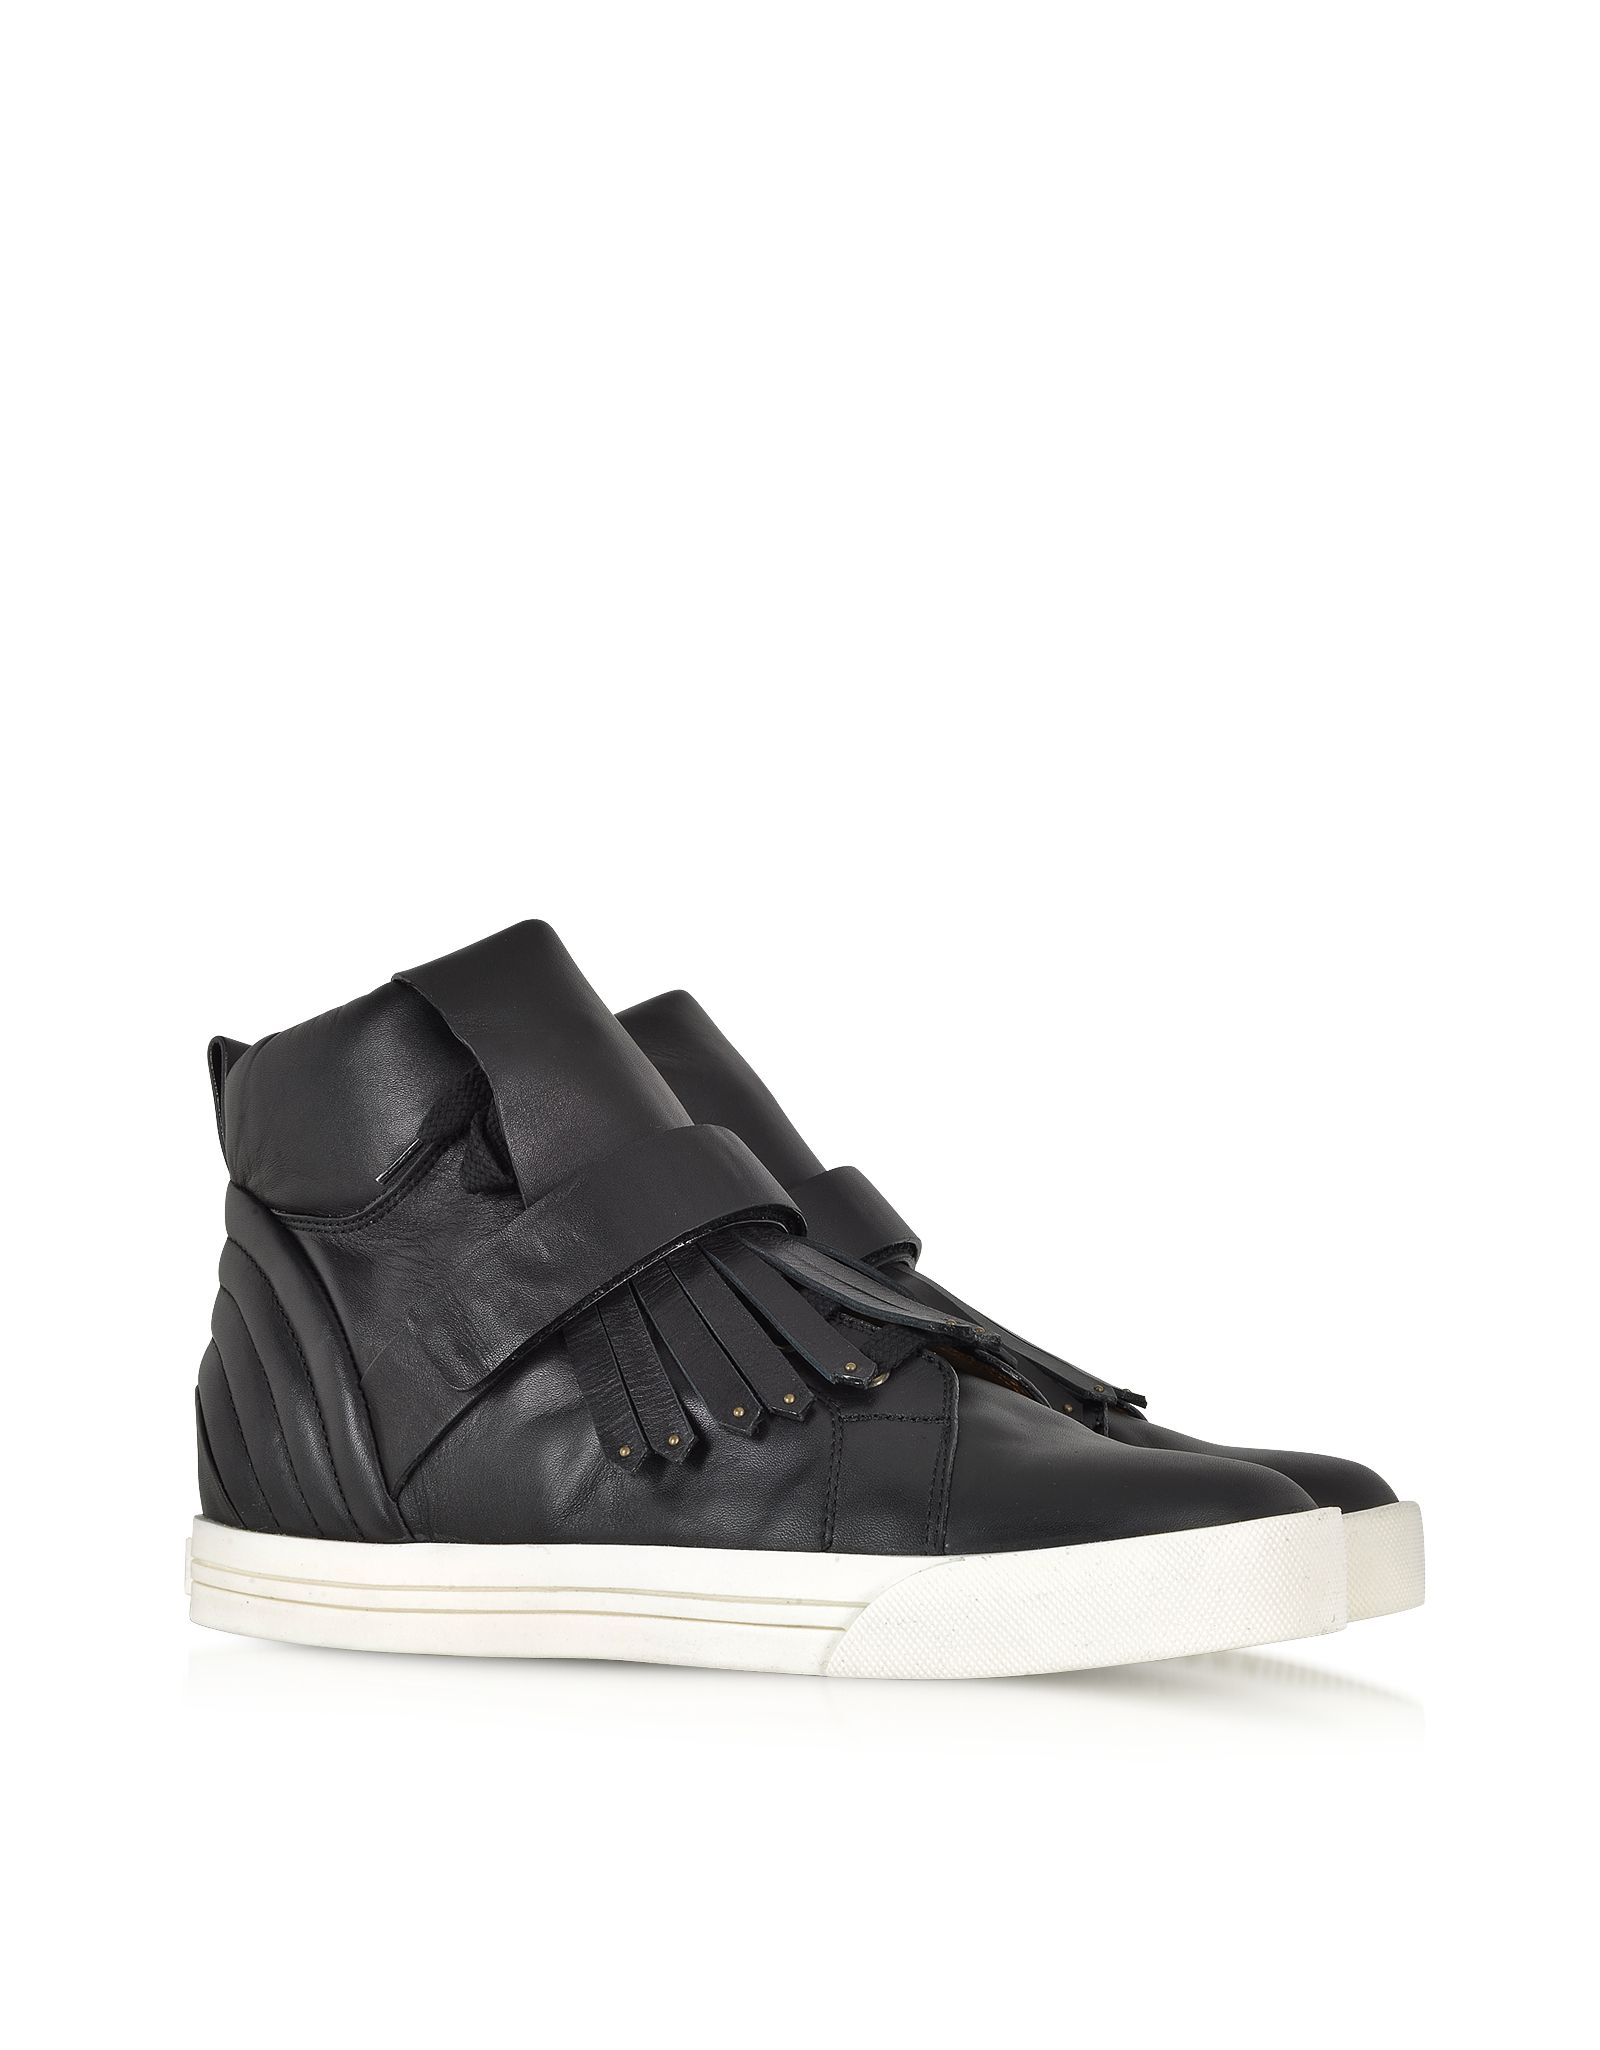 Marc jacobs black high top fringed leather sneaker actual